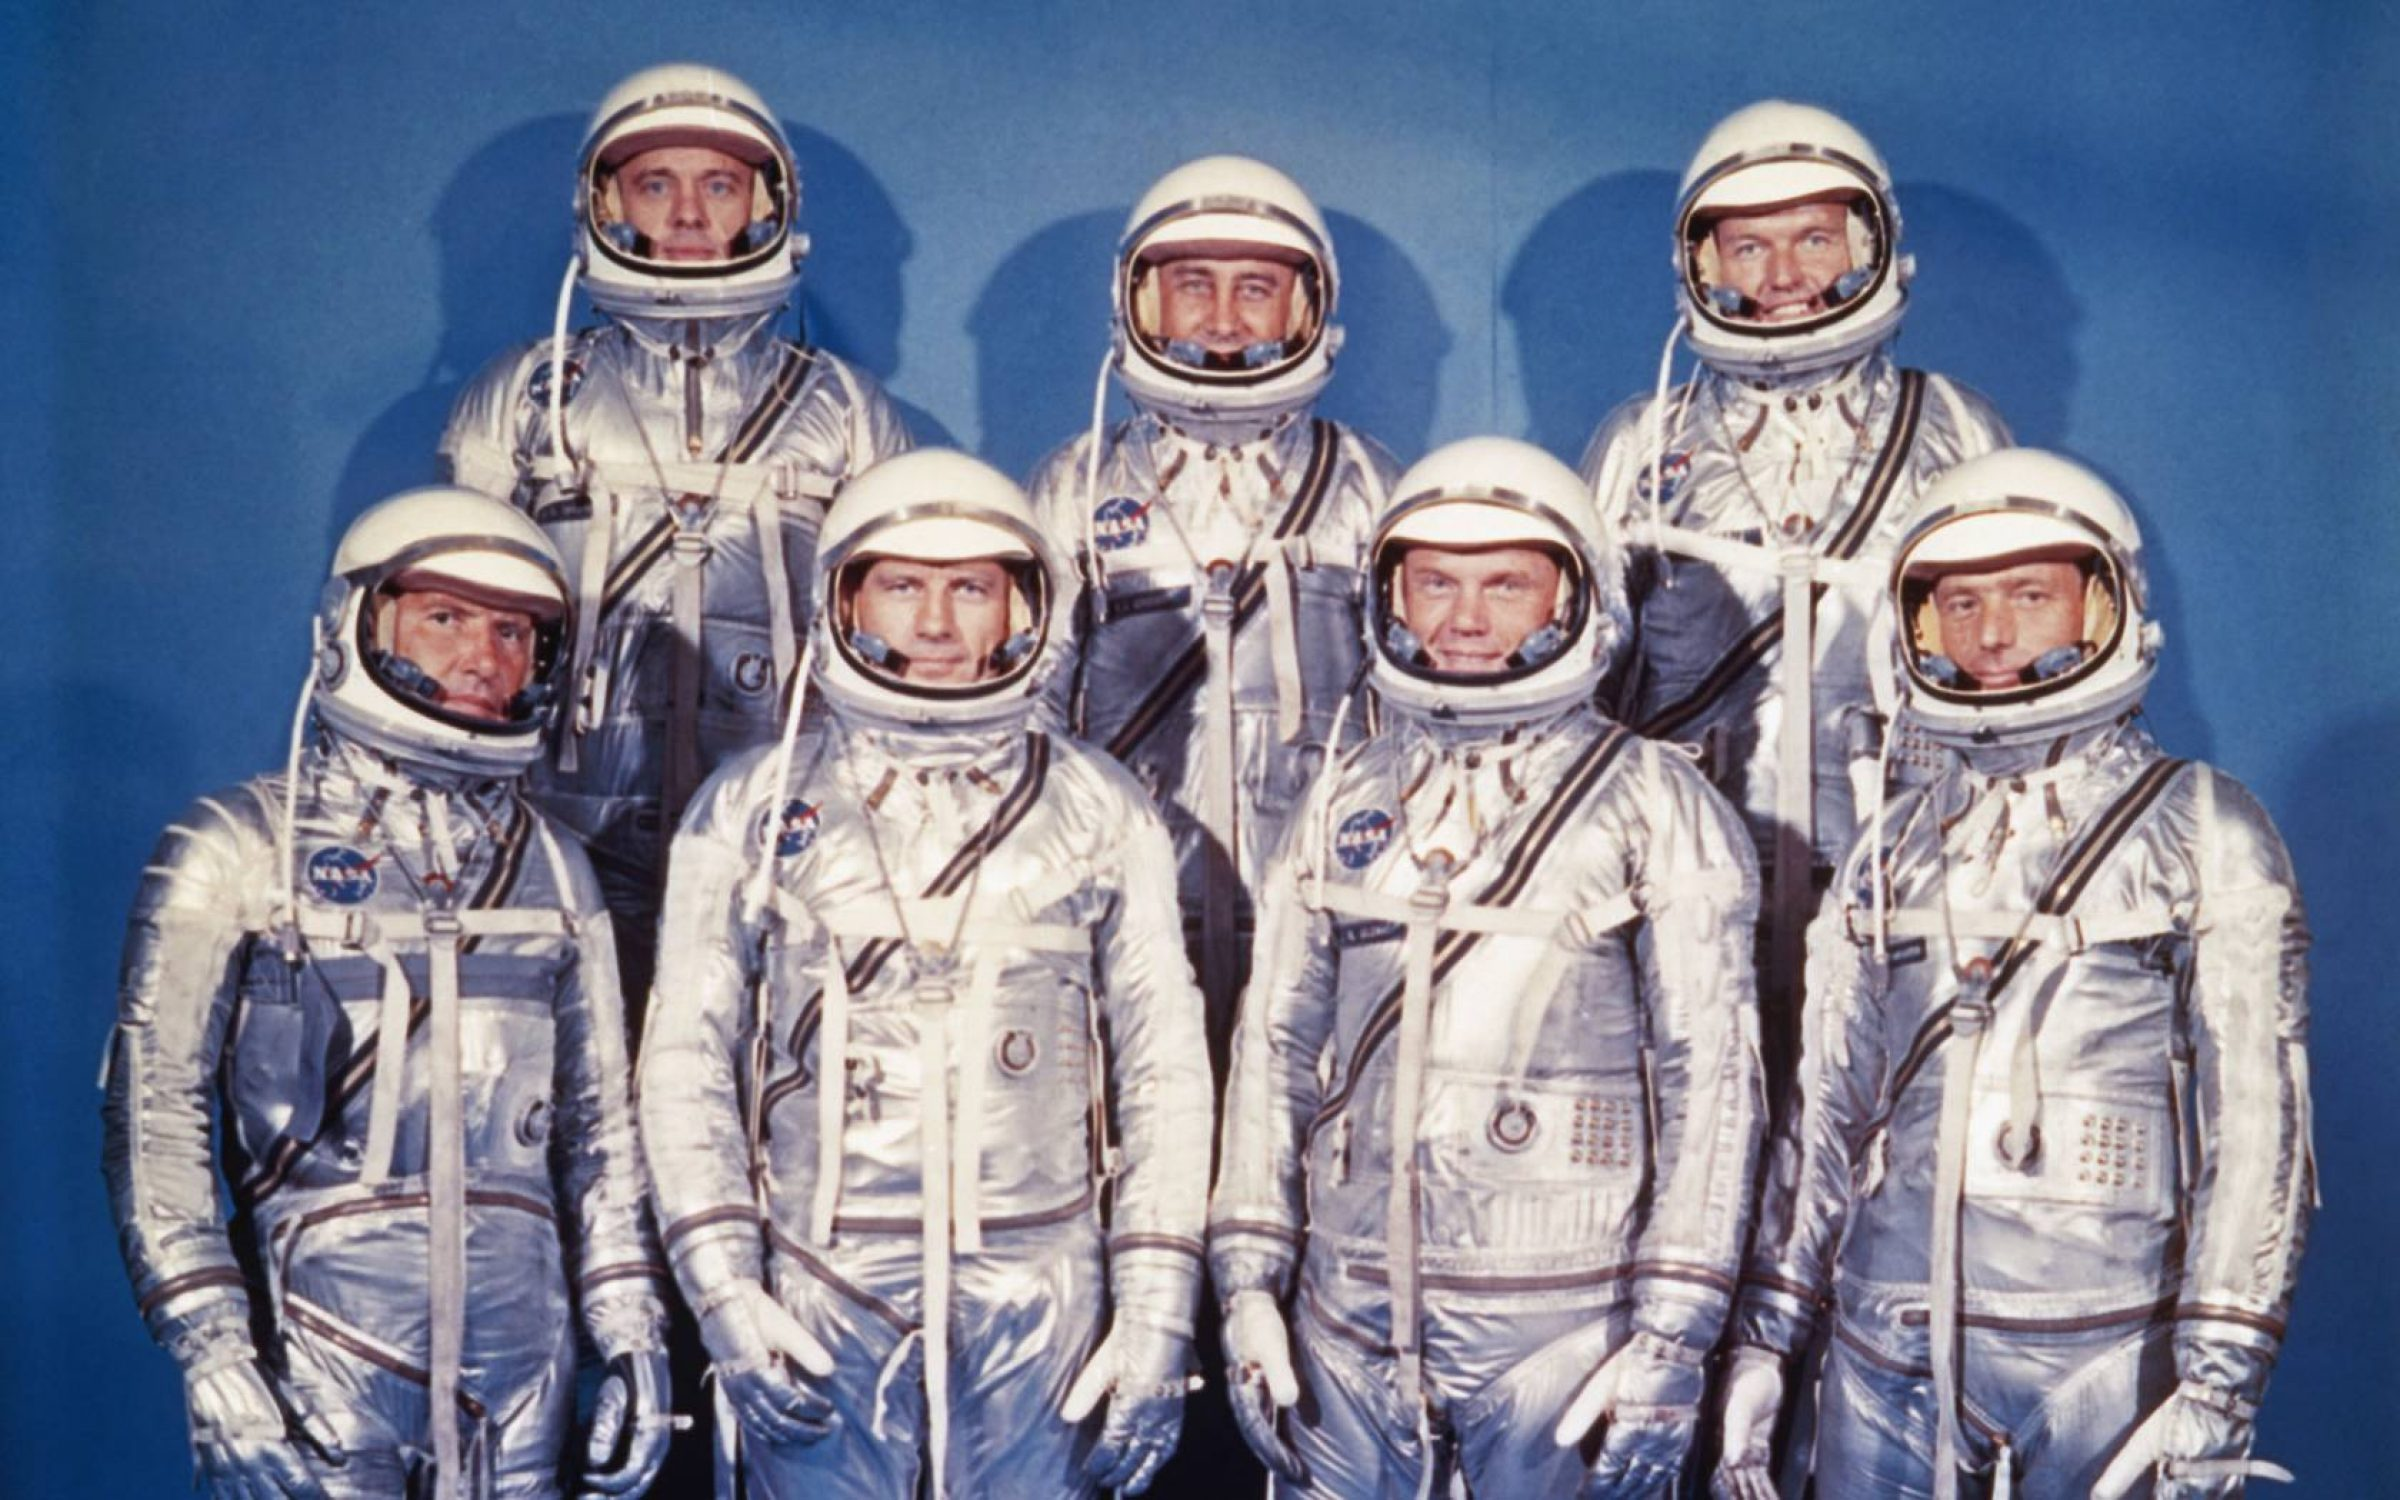 The Mercury Seven immortalised in Tom Wolfe's The Right Stuff